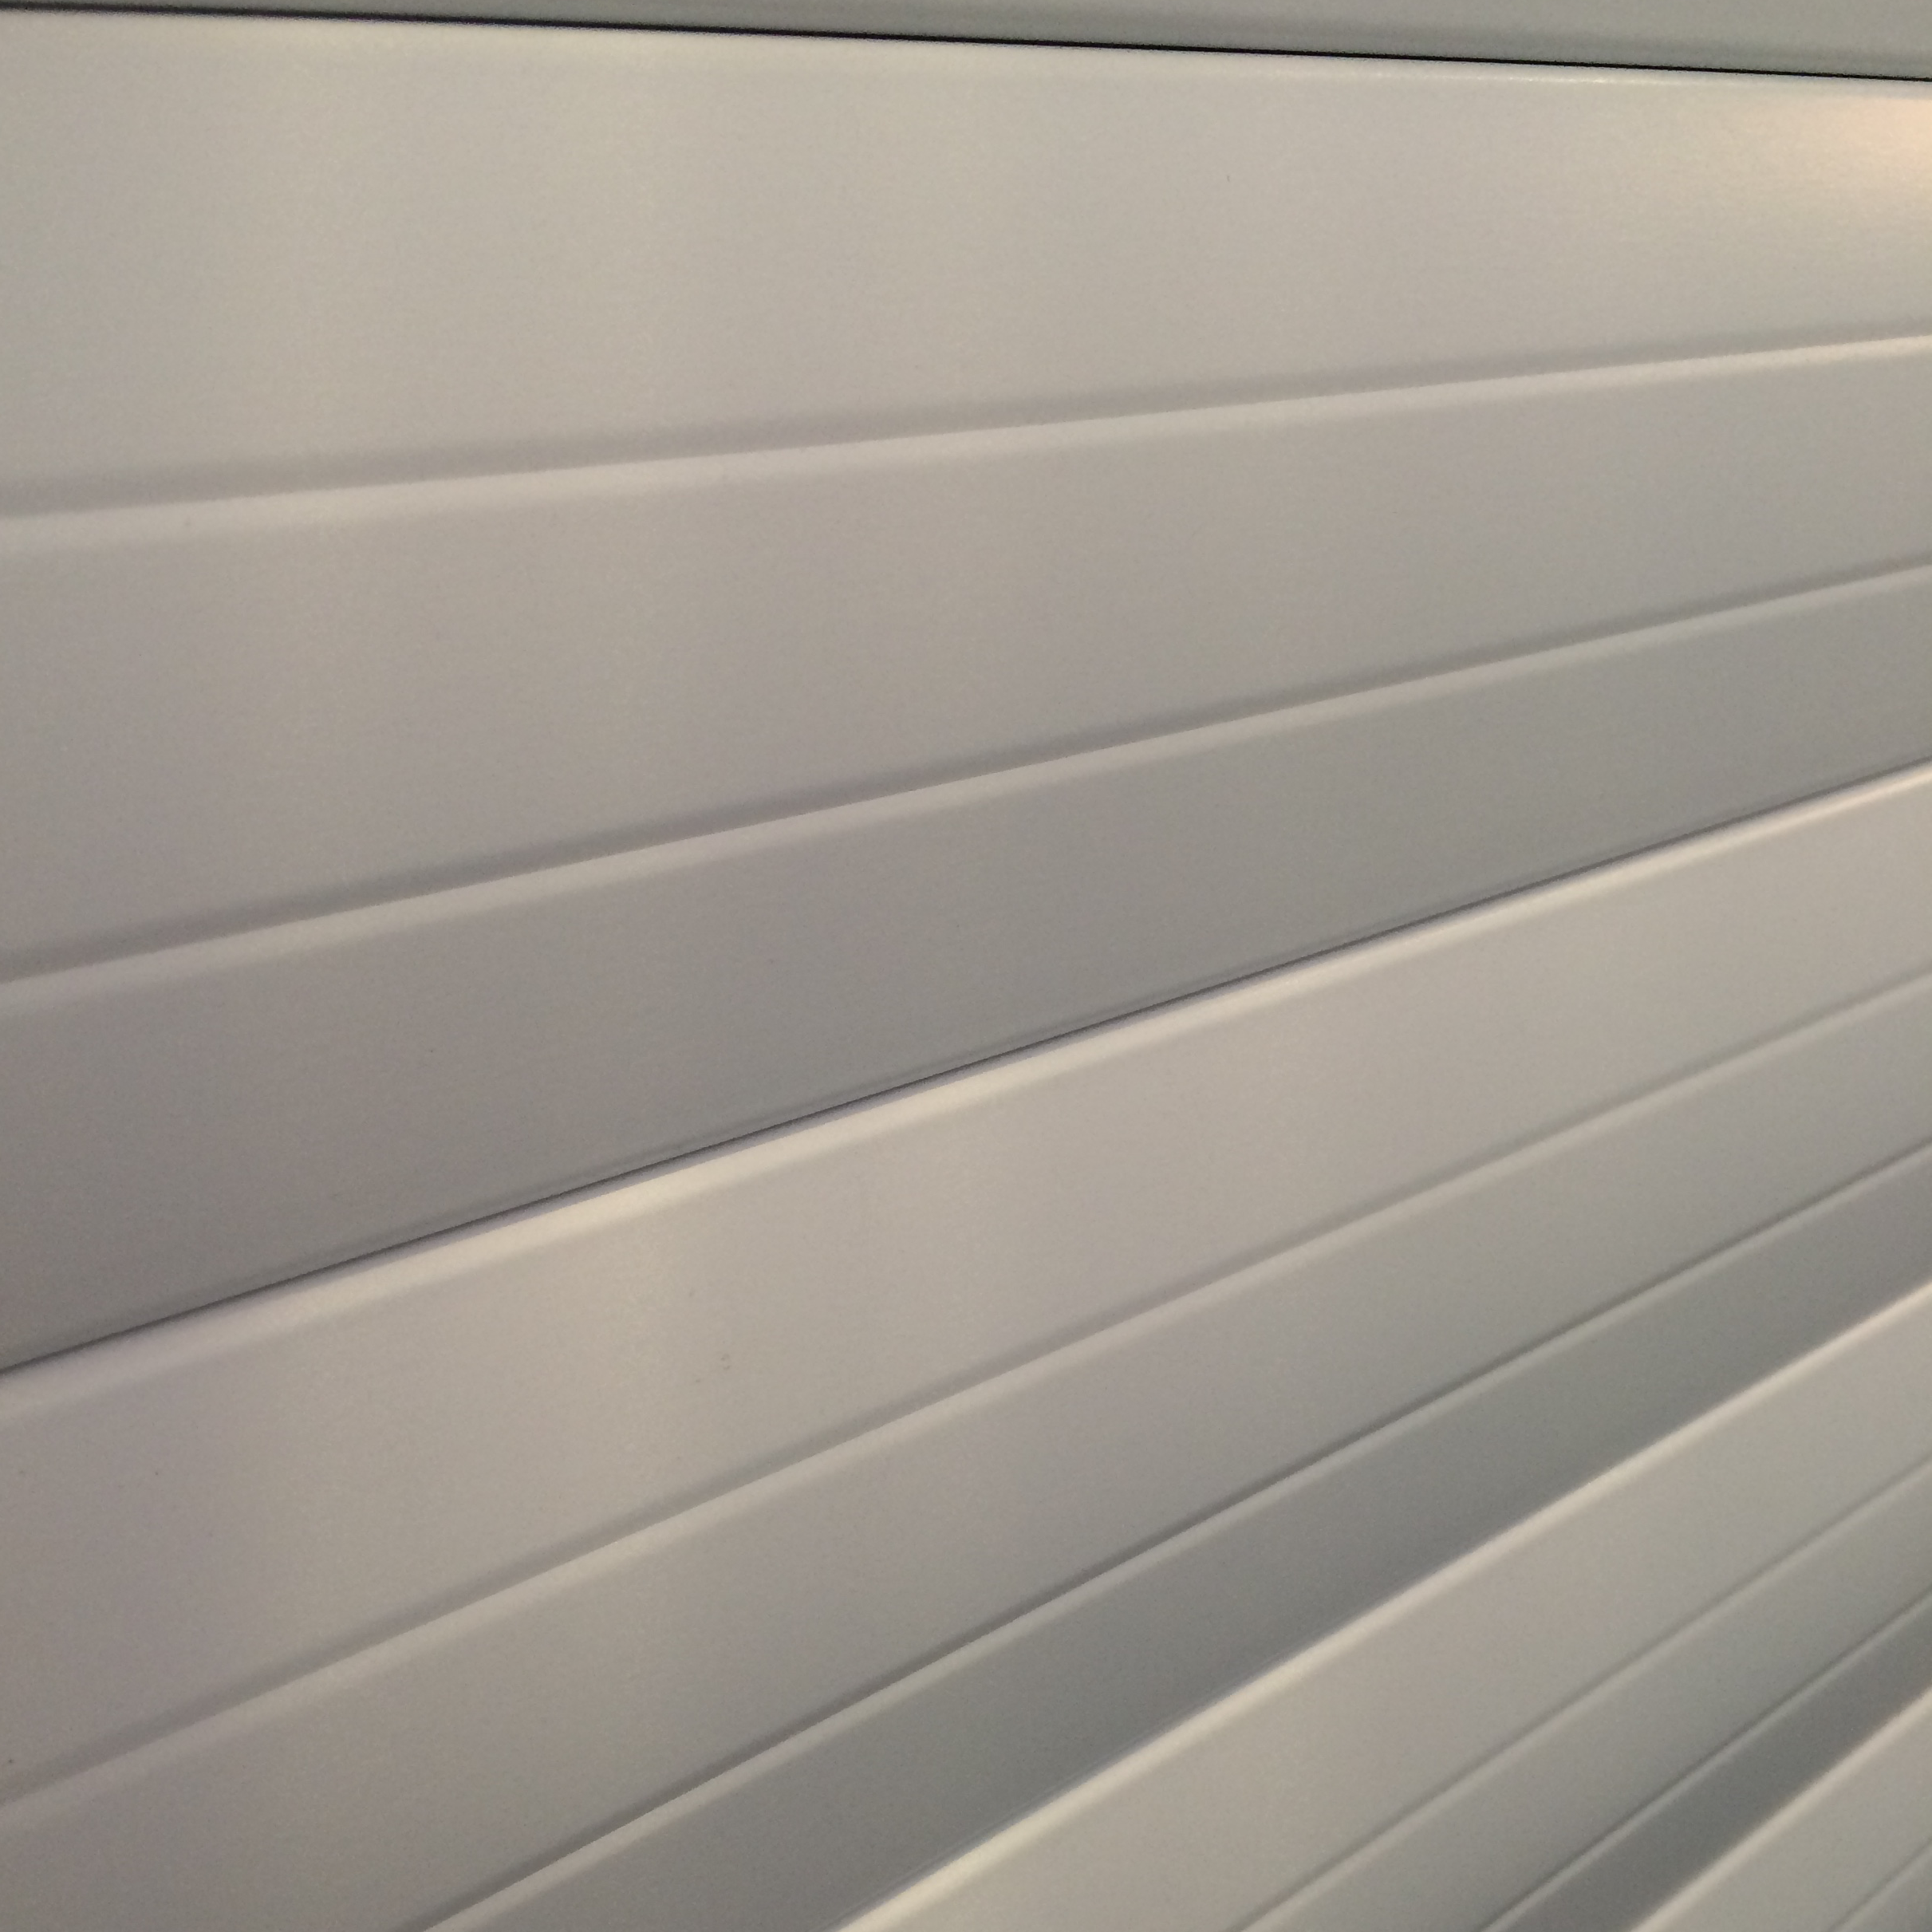 Aluroll T77 Elite - LPCB SR1 Approved Security Shutter Slats